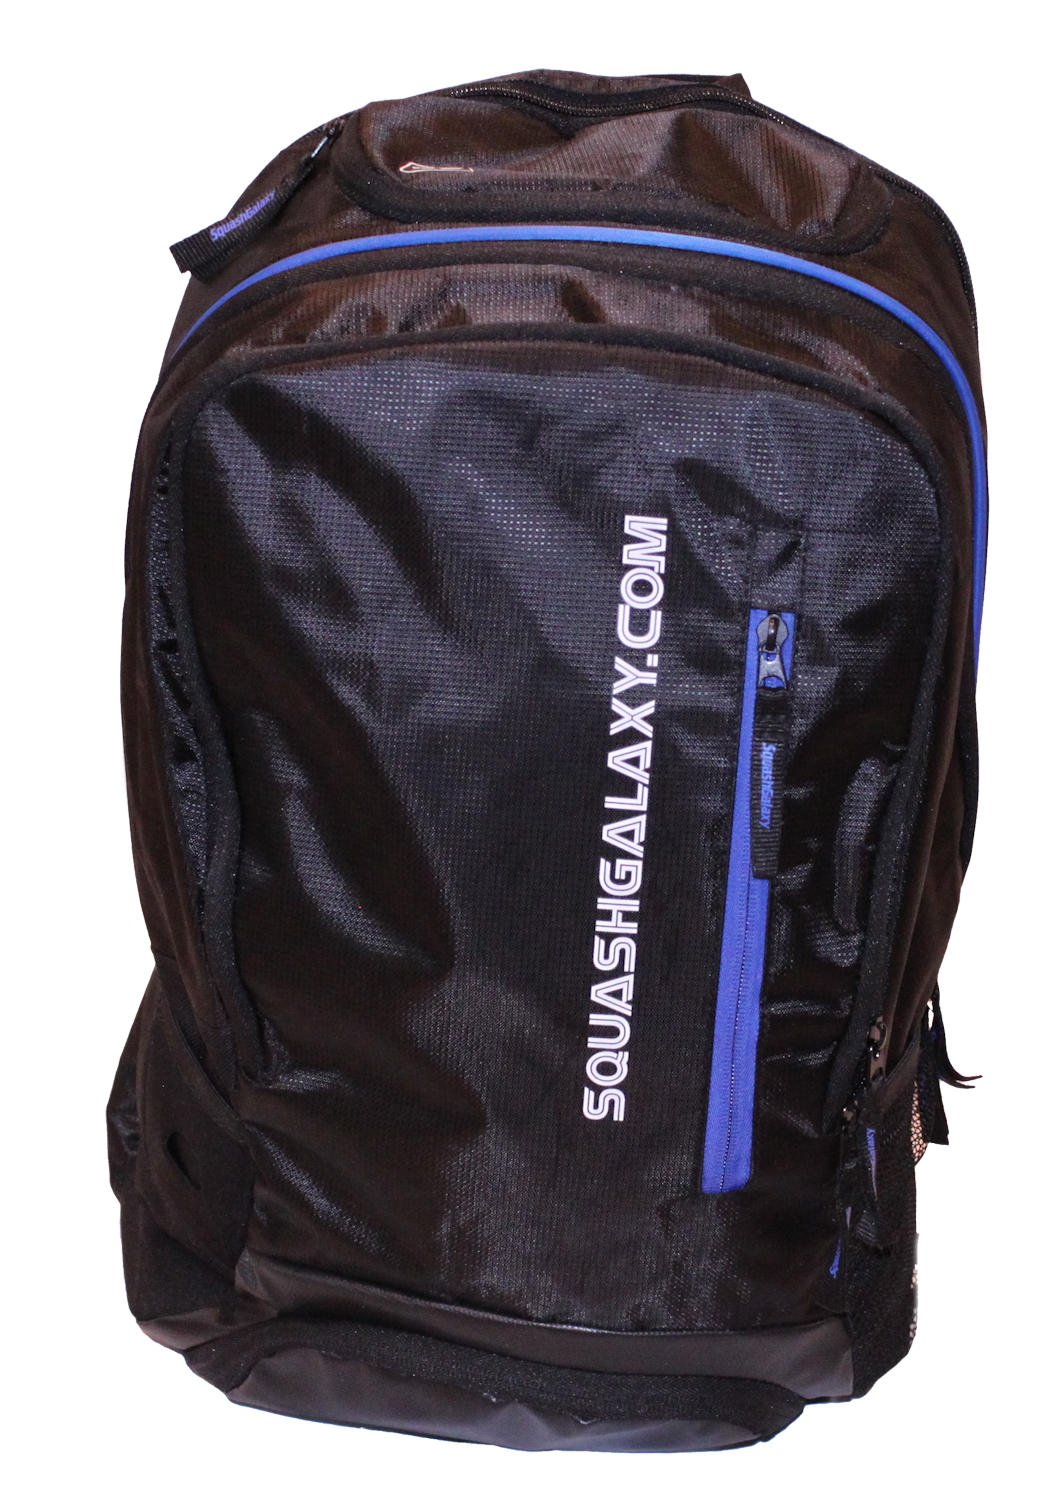 Squash Galaxy Deluxe Backpack Squash Bag (Ultimate Value)